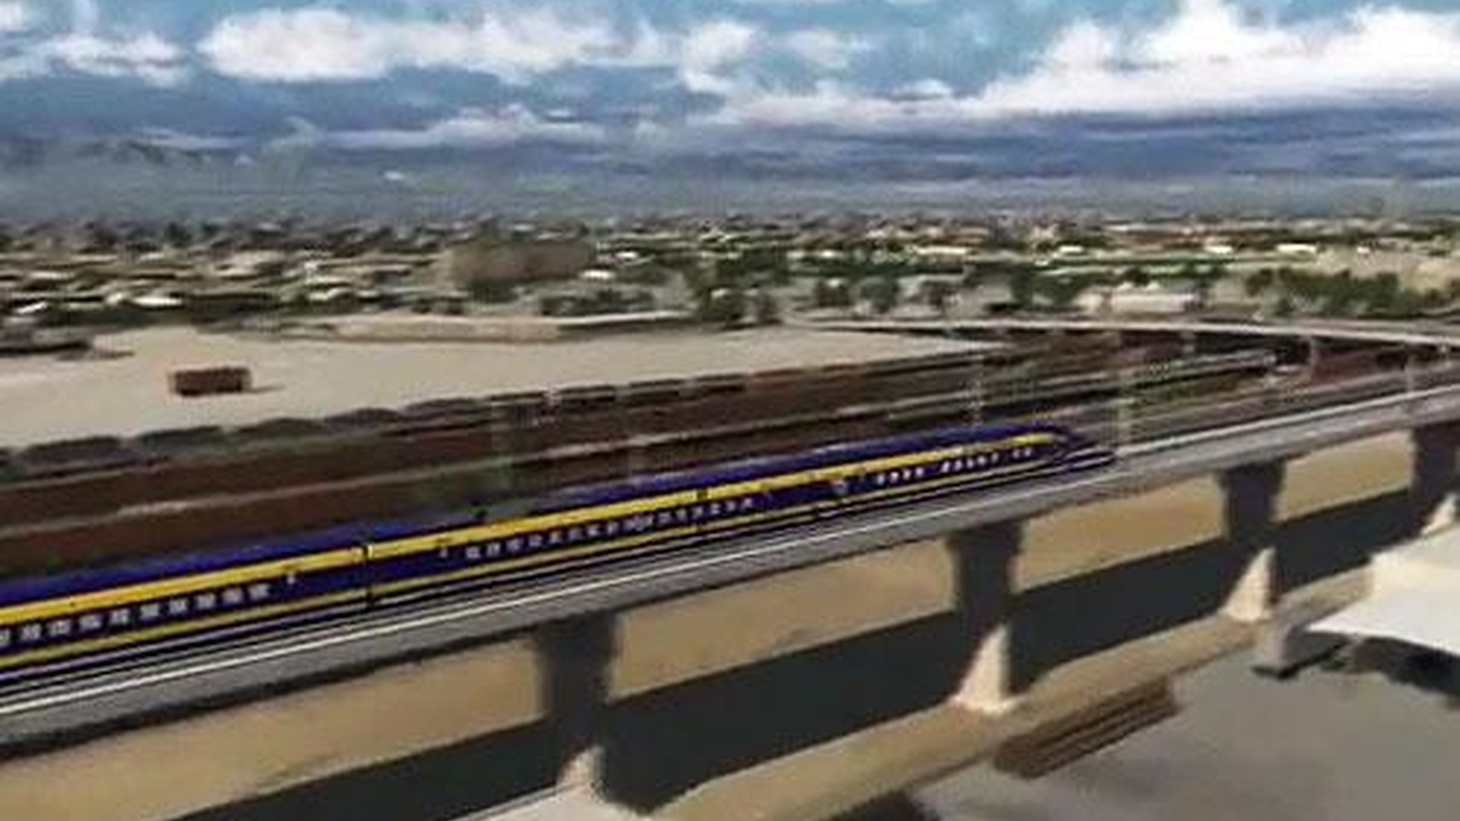 The claim that railroads built the West is being re-examined by historians, as is the claim that high-speed rail will solve the state's future transportation needs...